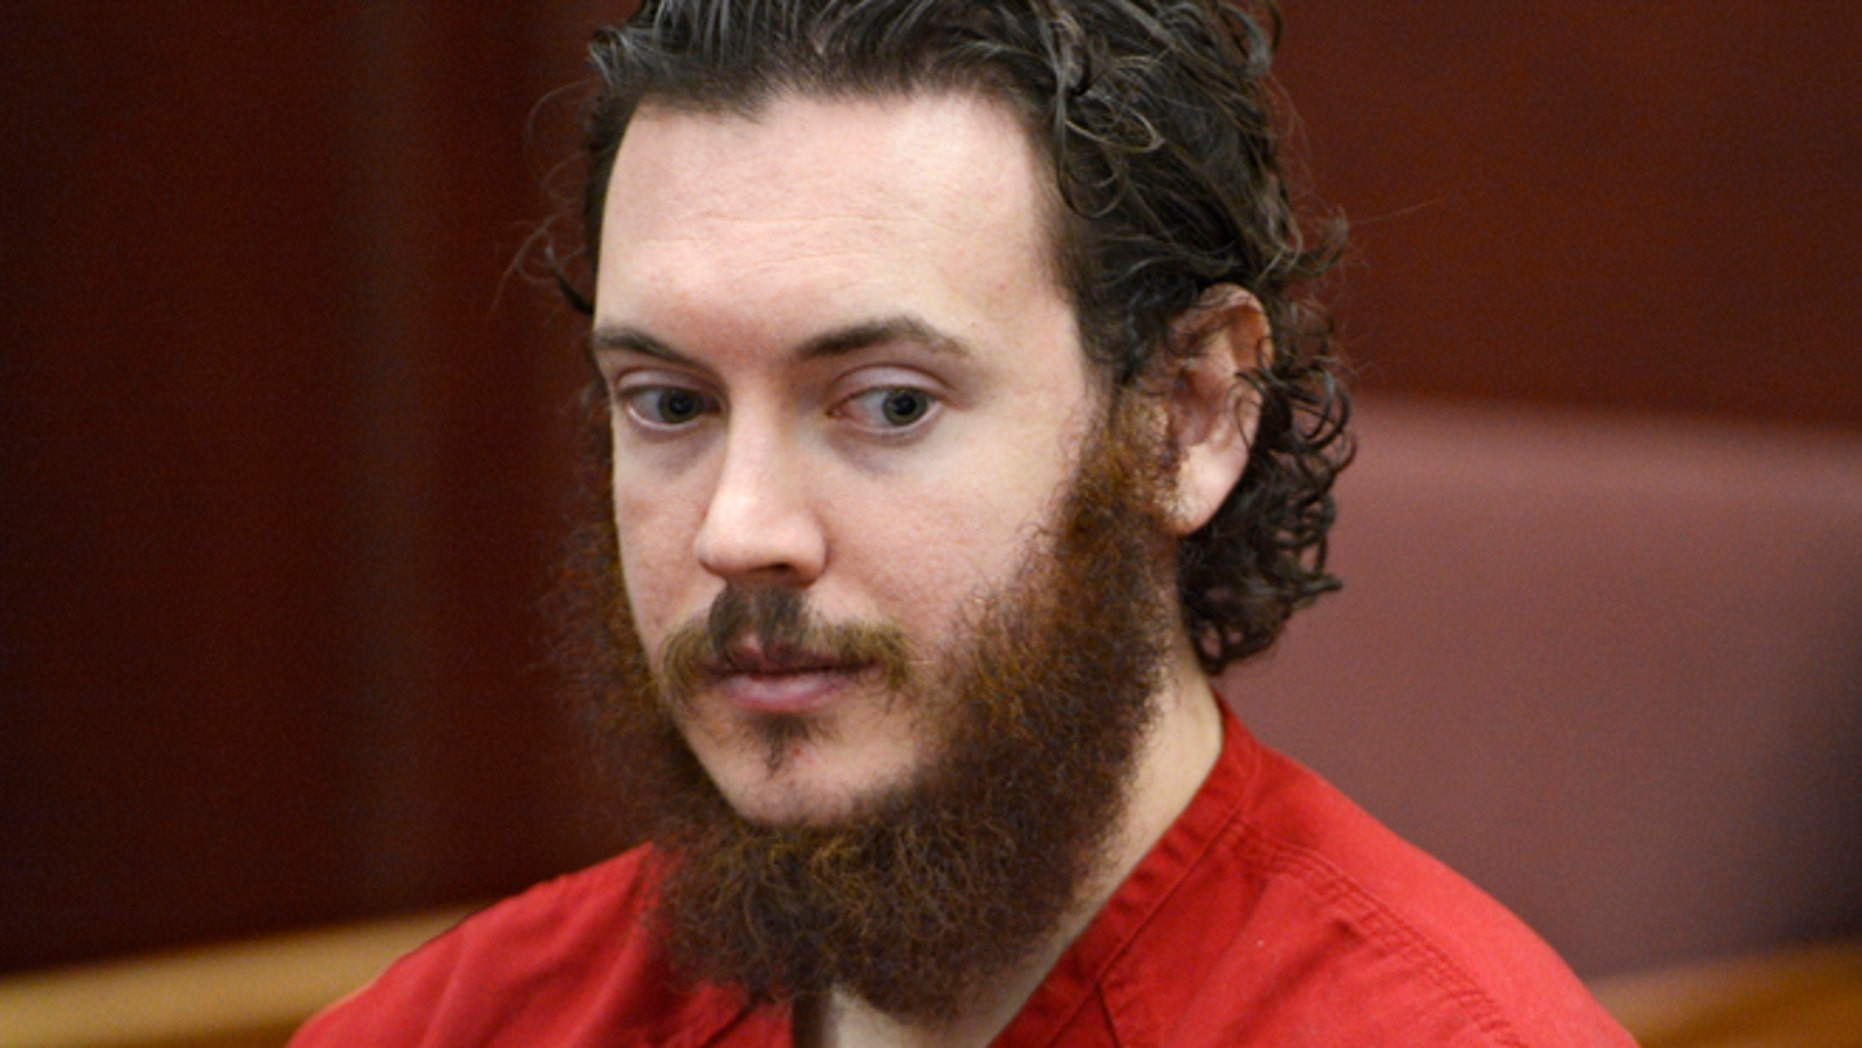 June 4, 2013: File photo, Aurora theater shooting suspect James Holmes is seated in court in Centennial, Colo.